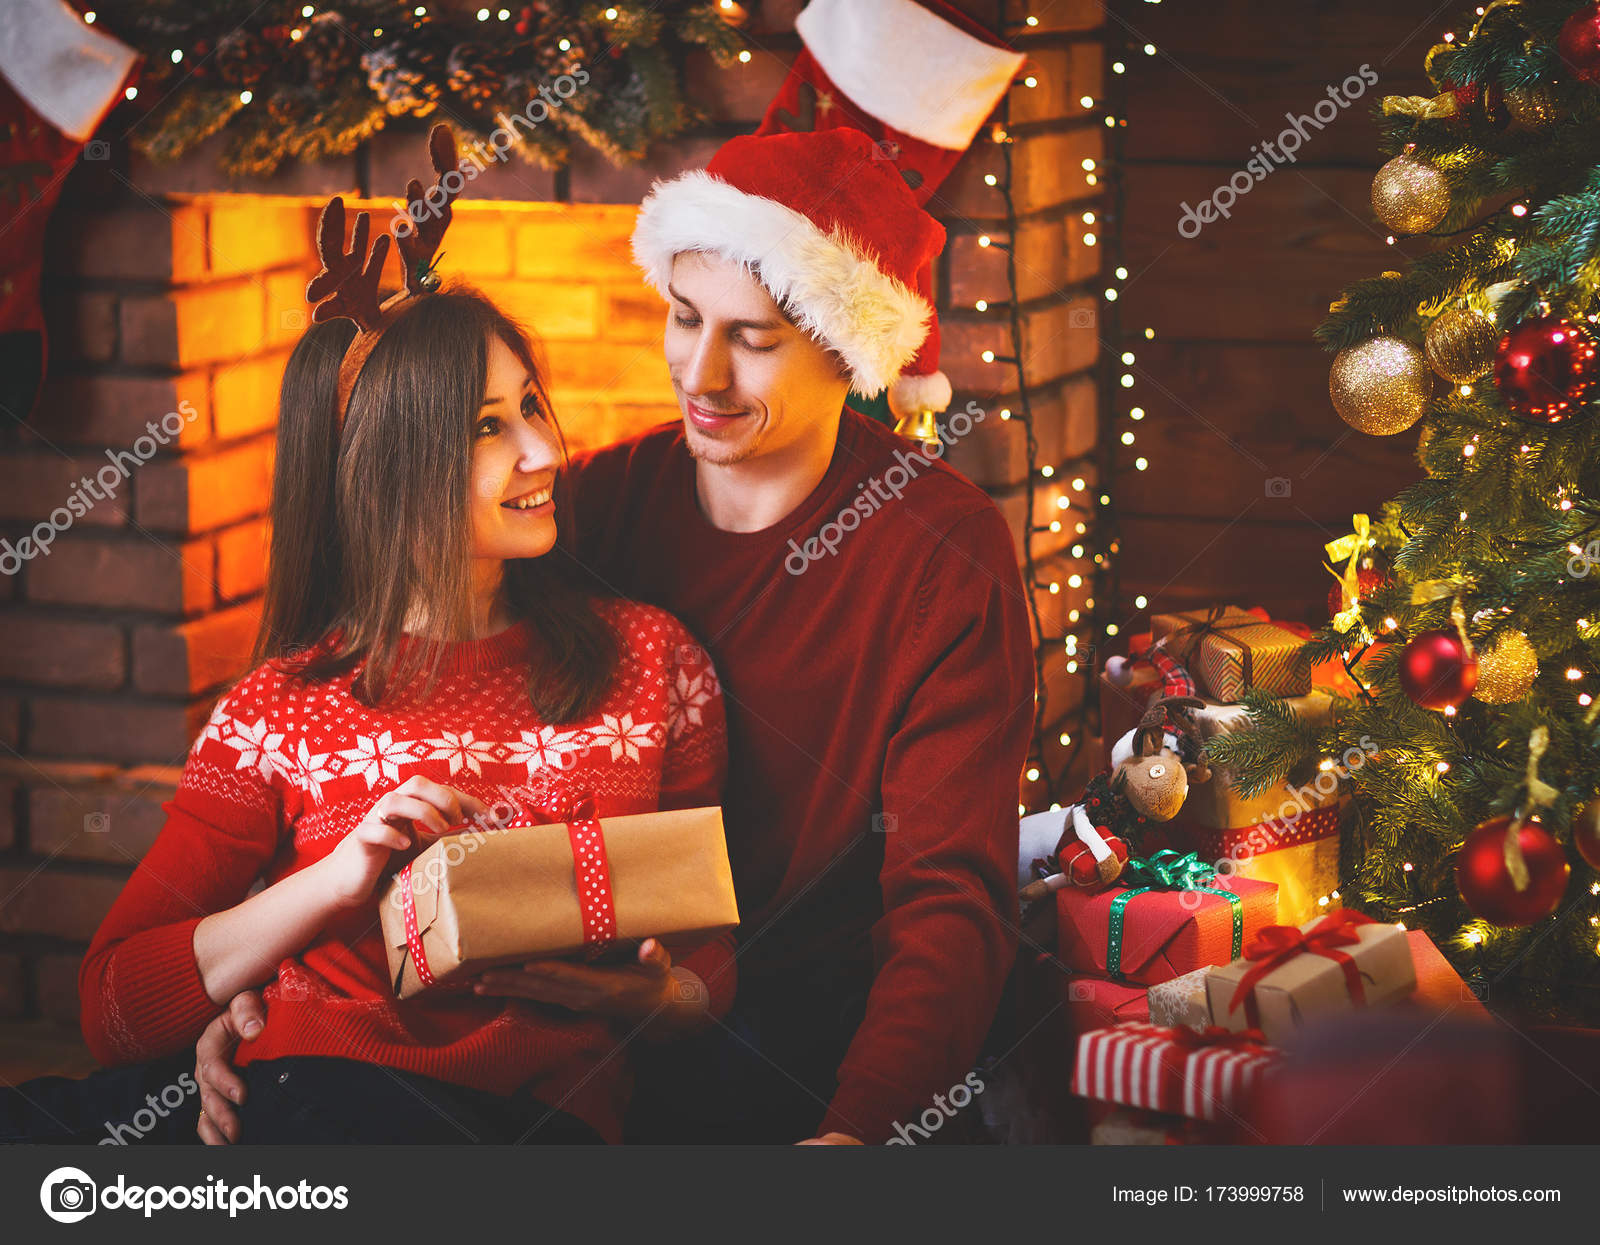 Merry Christmas Family.Merry Christmas Family Couple With Magic Christmas Gift